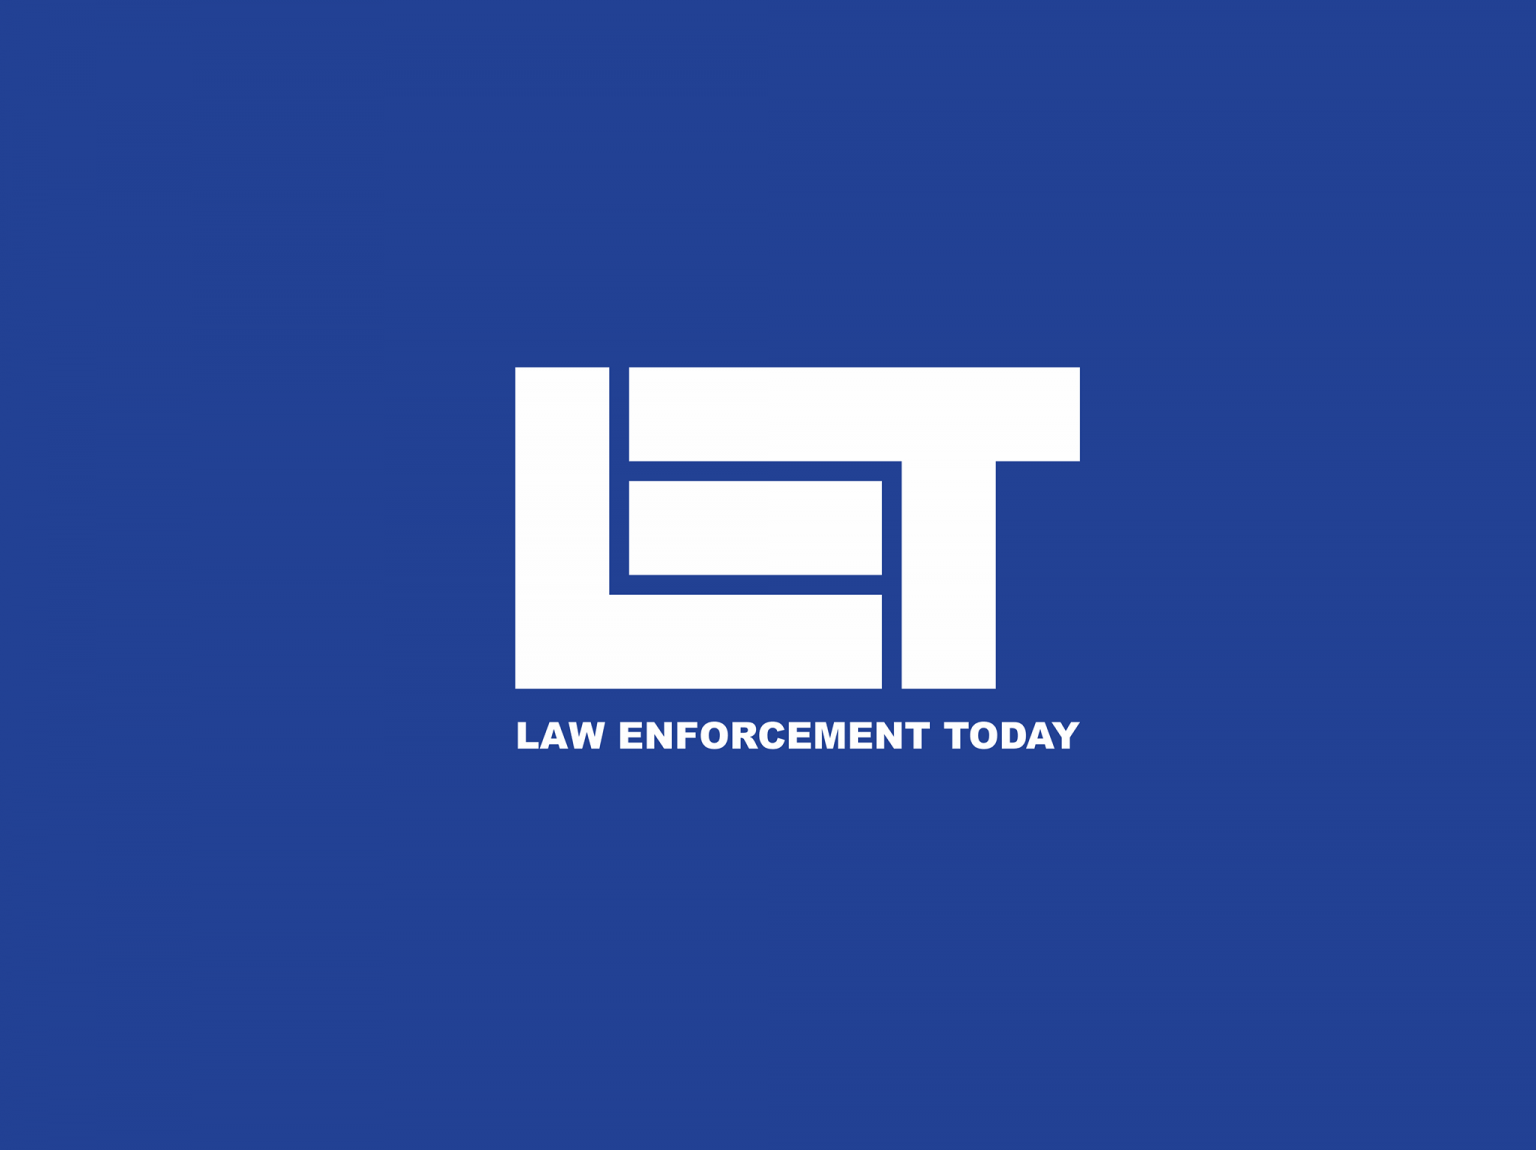 Law Enforcement Today - Your source for cutting-edge law enforcement articles and information